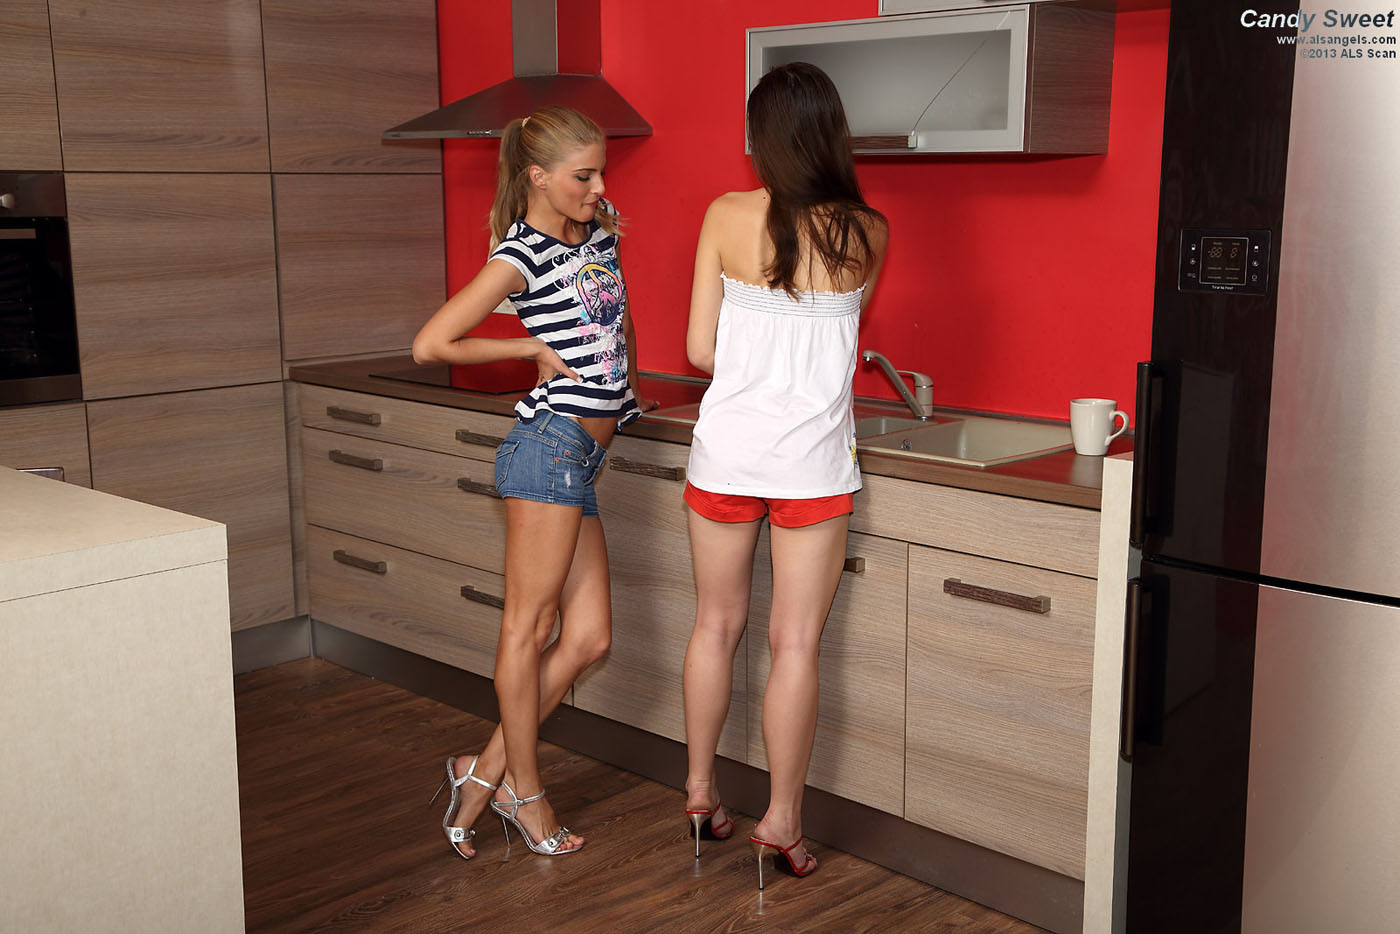 Candy Sweet - Pussy Licking With Lesbians Candy Sweet and Cayenne